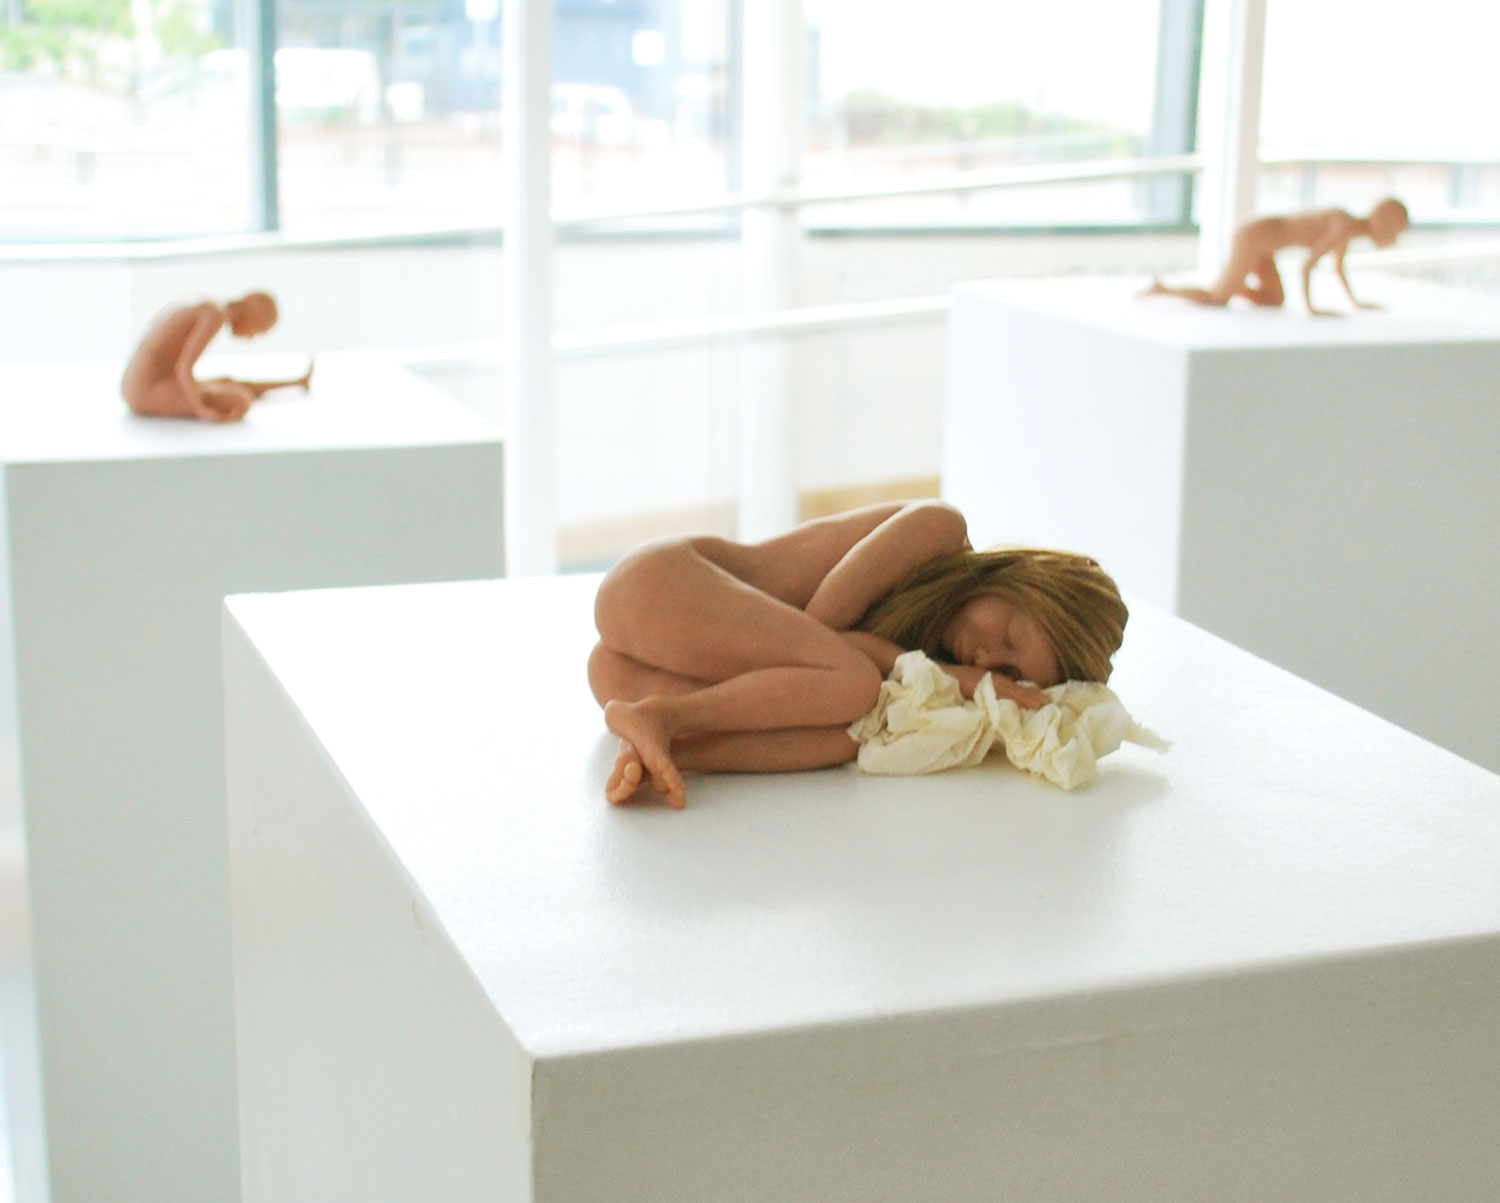 sleep-little-virgin-clay-sculpture-multi.jpg